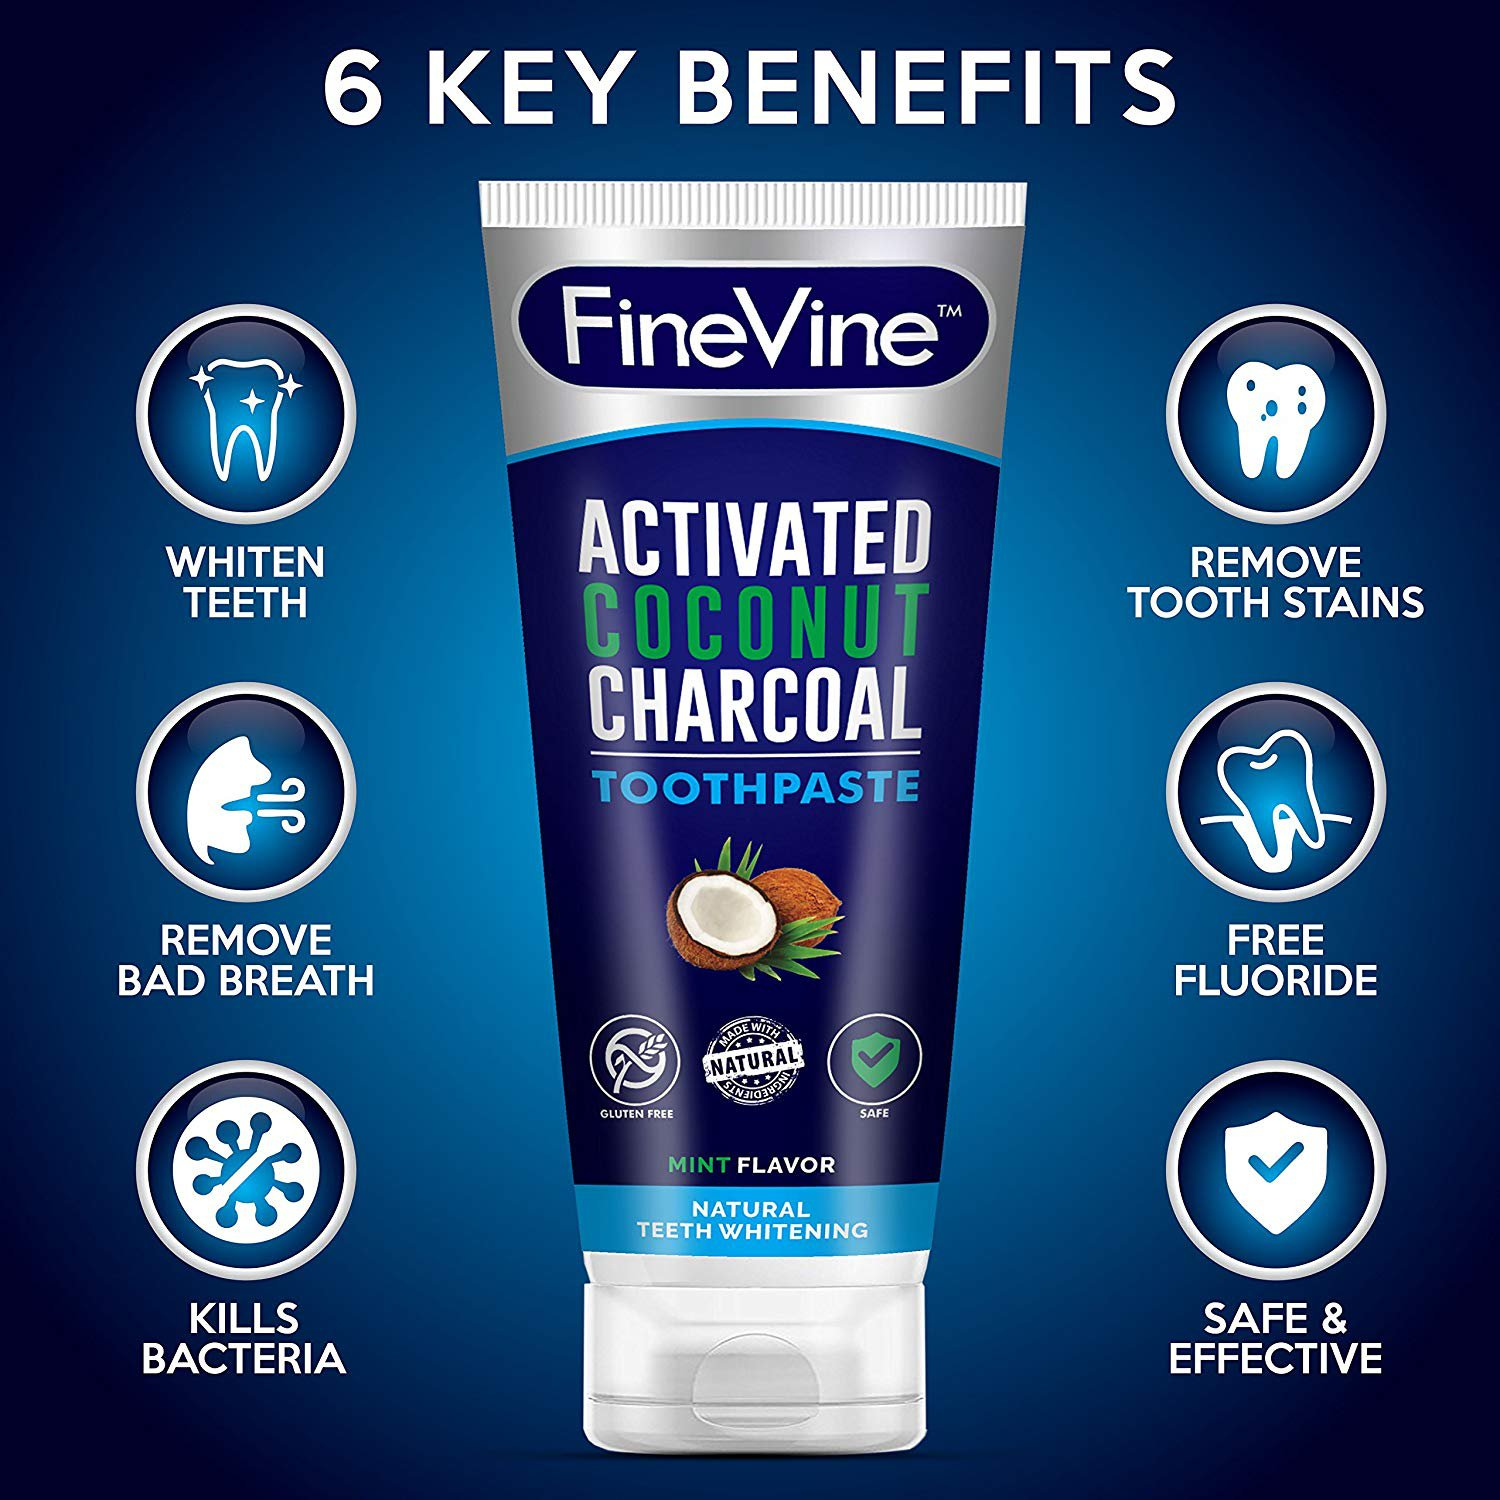 FineVine...Best Teeth Whitening Products, Powder, Coffee, Smoke Stains, Healthy Gums ...